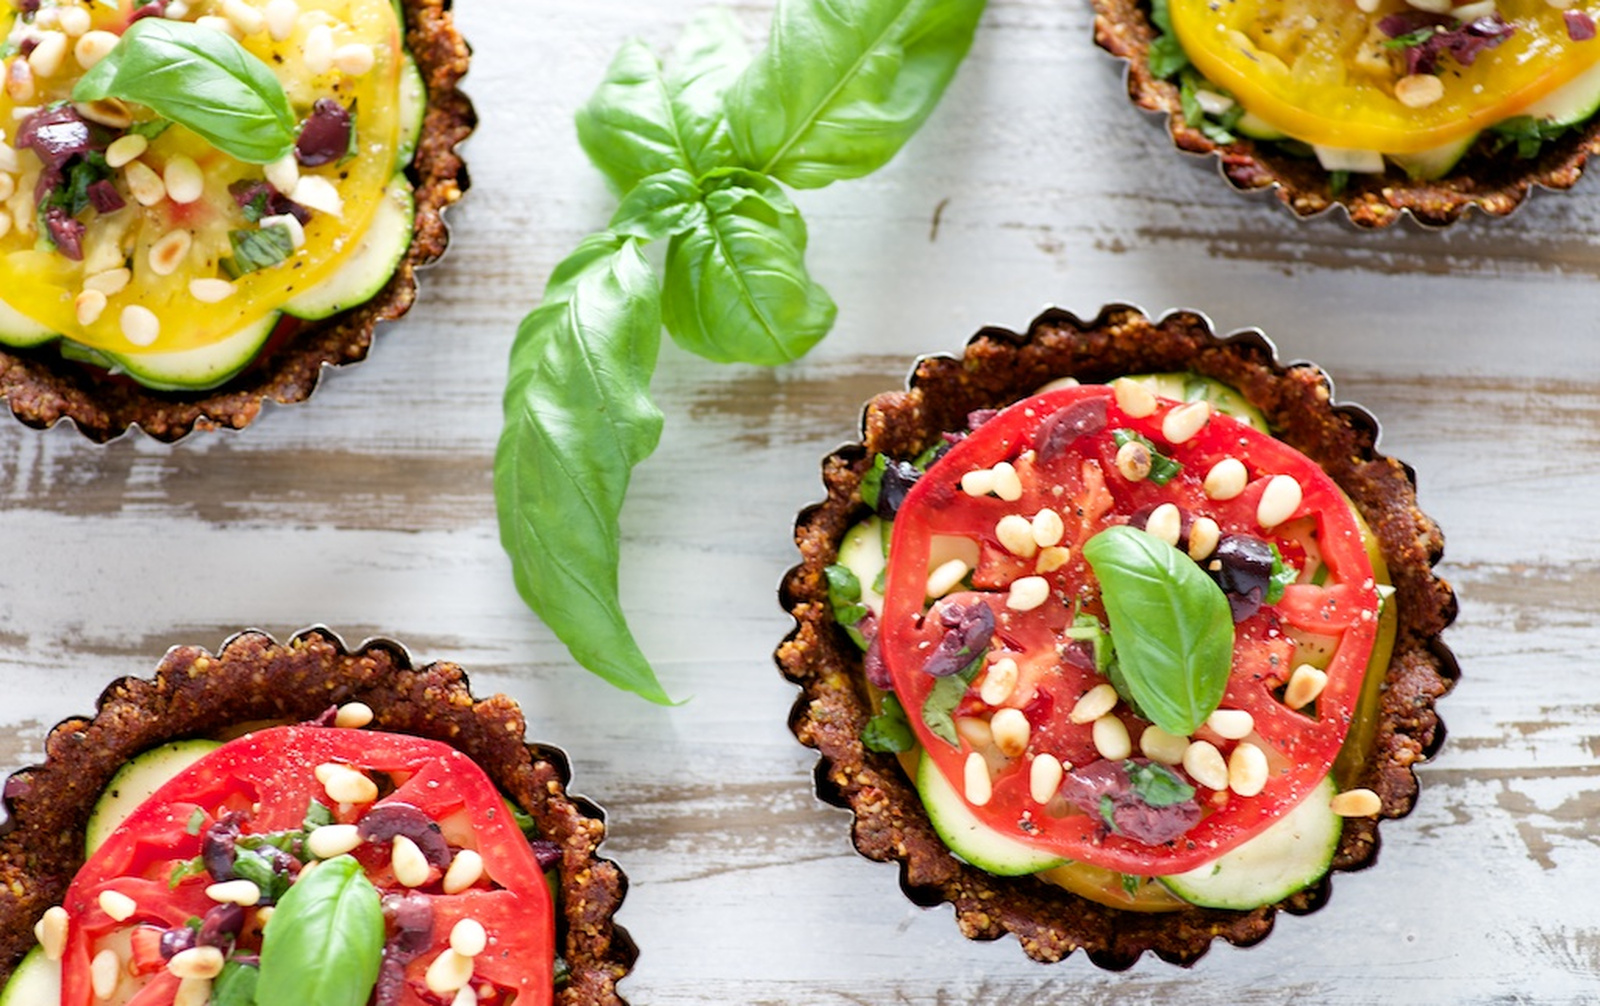 Sun-Dried Tomato and Zucchini Tarts [Vegan, Raw, Gluten-Free]